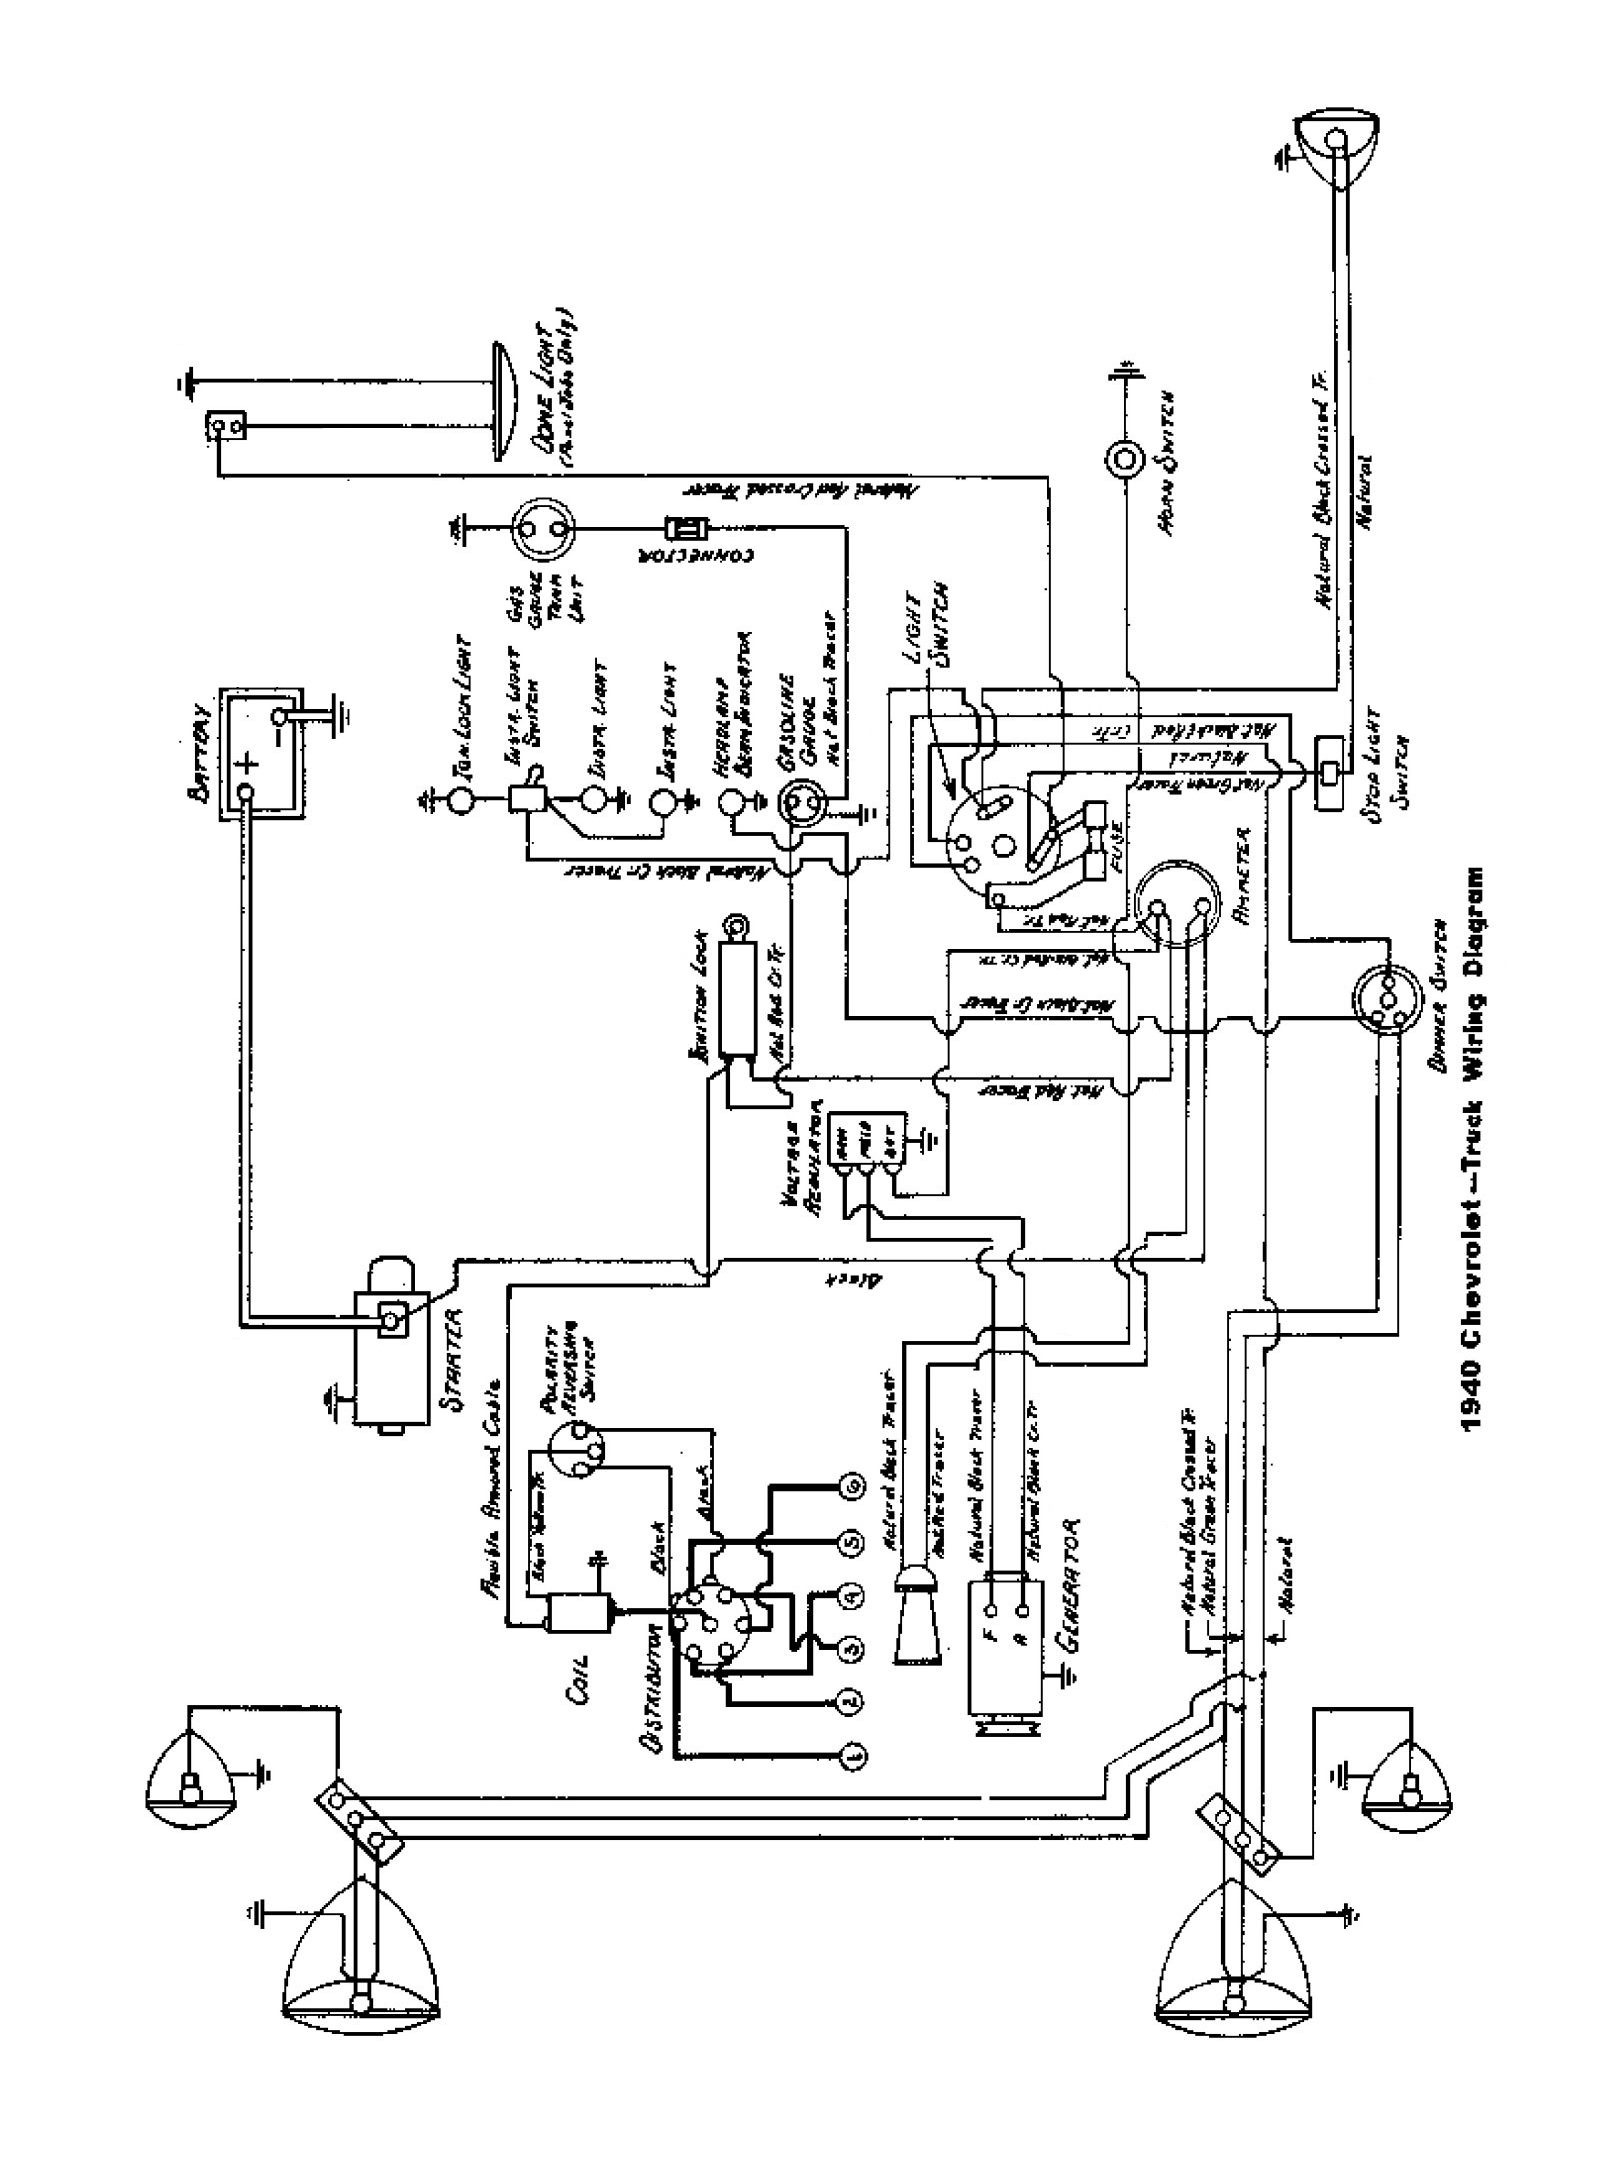 40truck wiring diagram for 1957 chevy starter readingrat net 1956 chevy wiring diagram at readyjetset.co